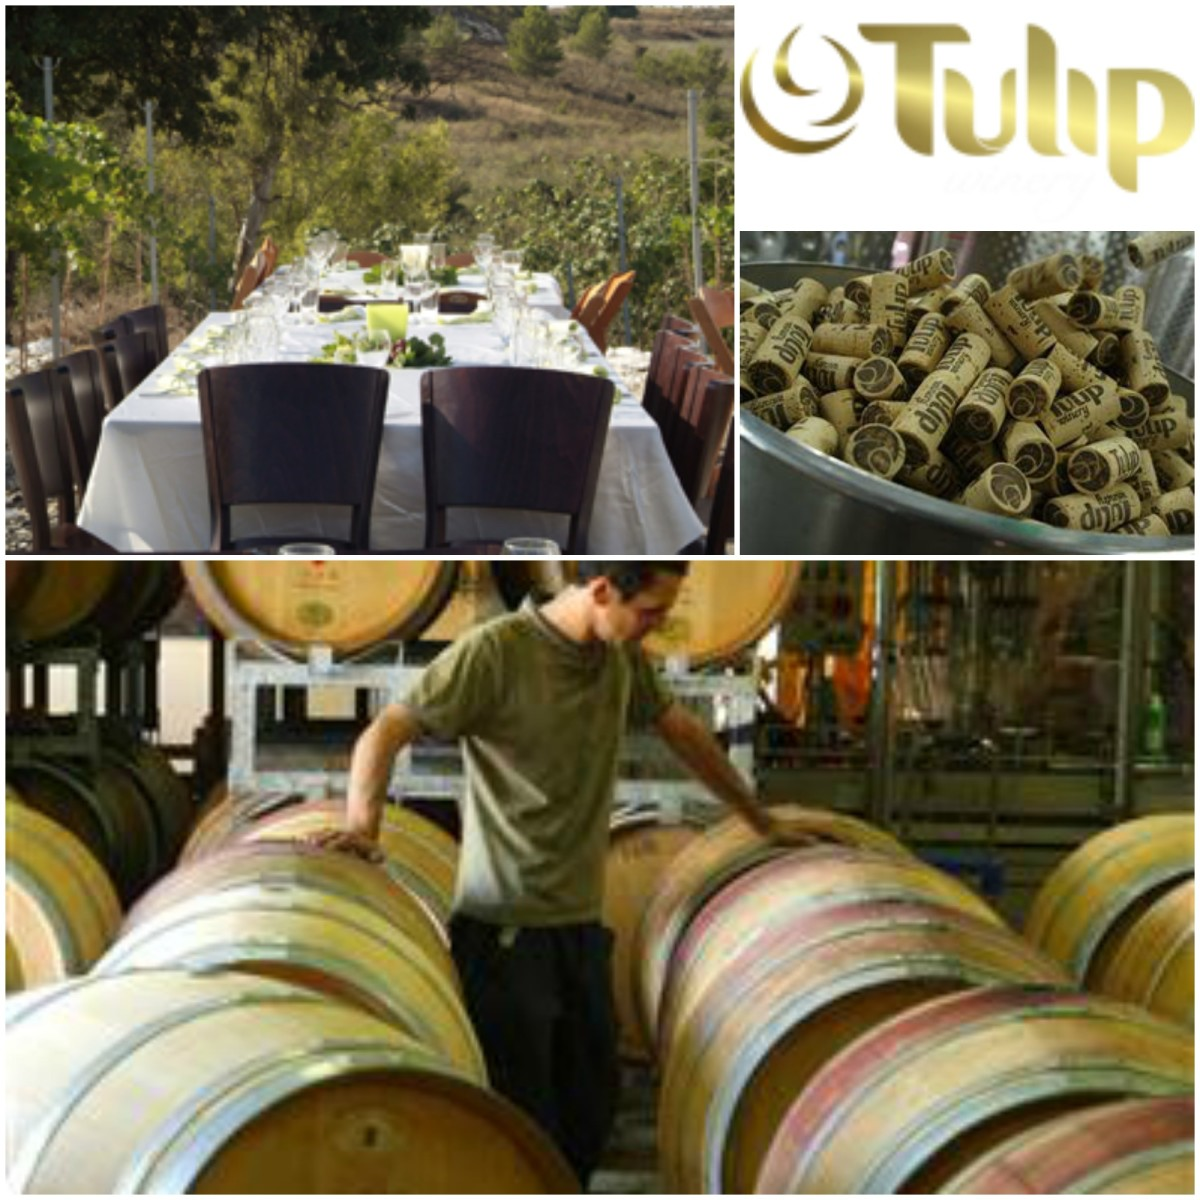 tulip winery collage